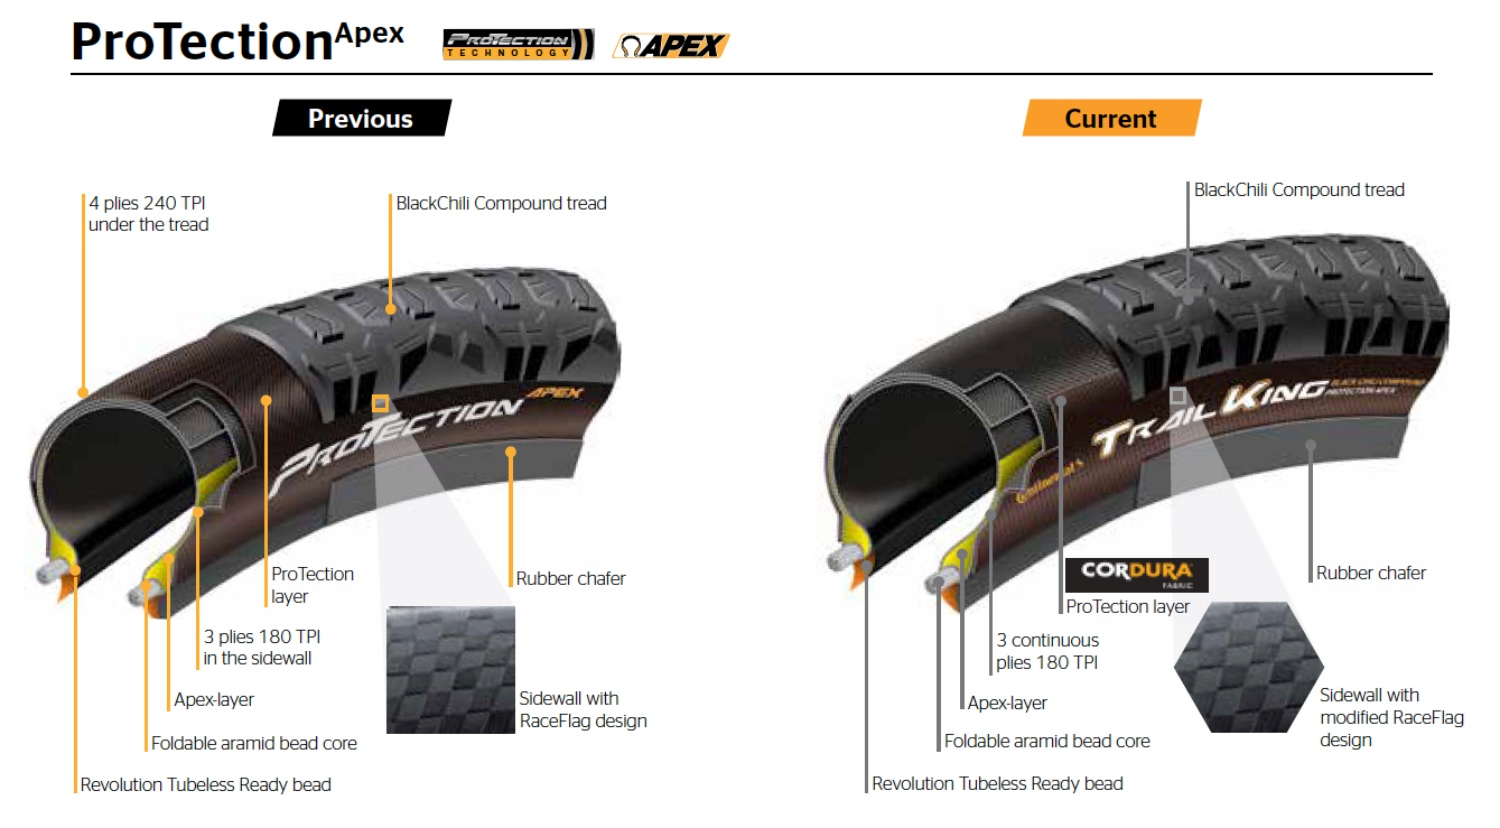 Continental Protection Apex